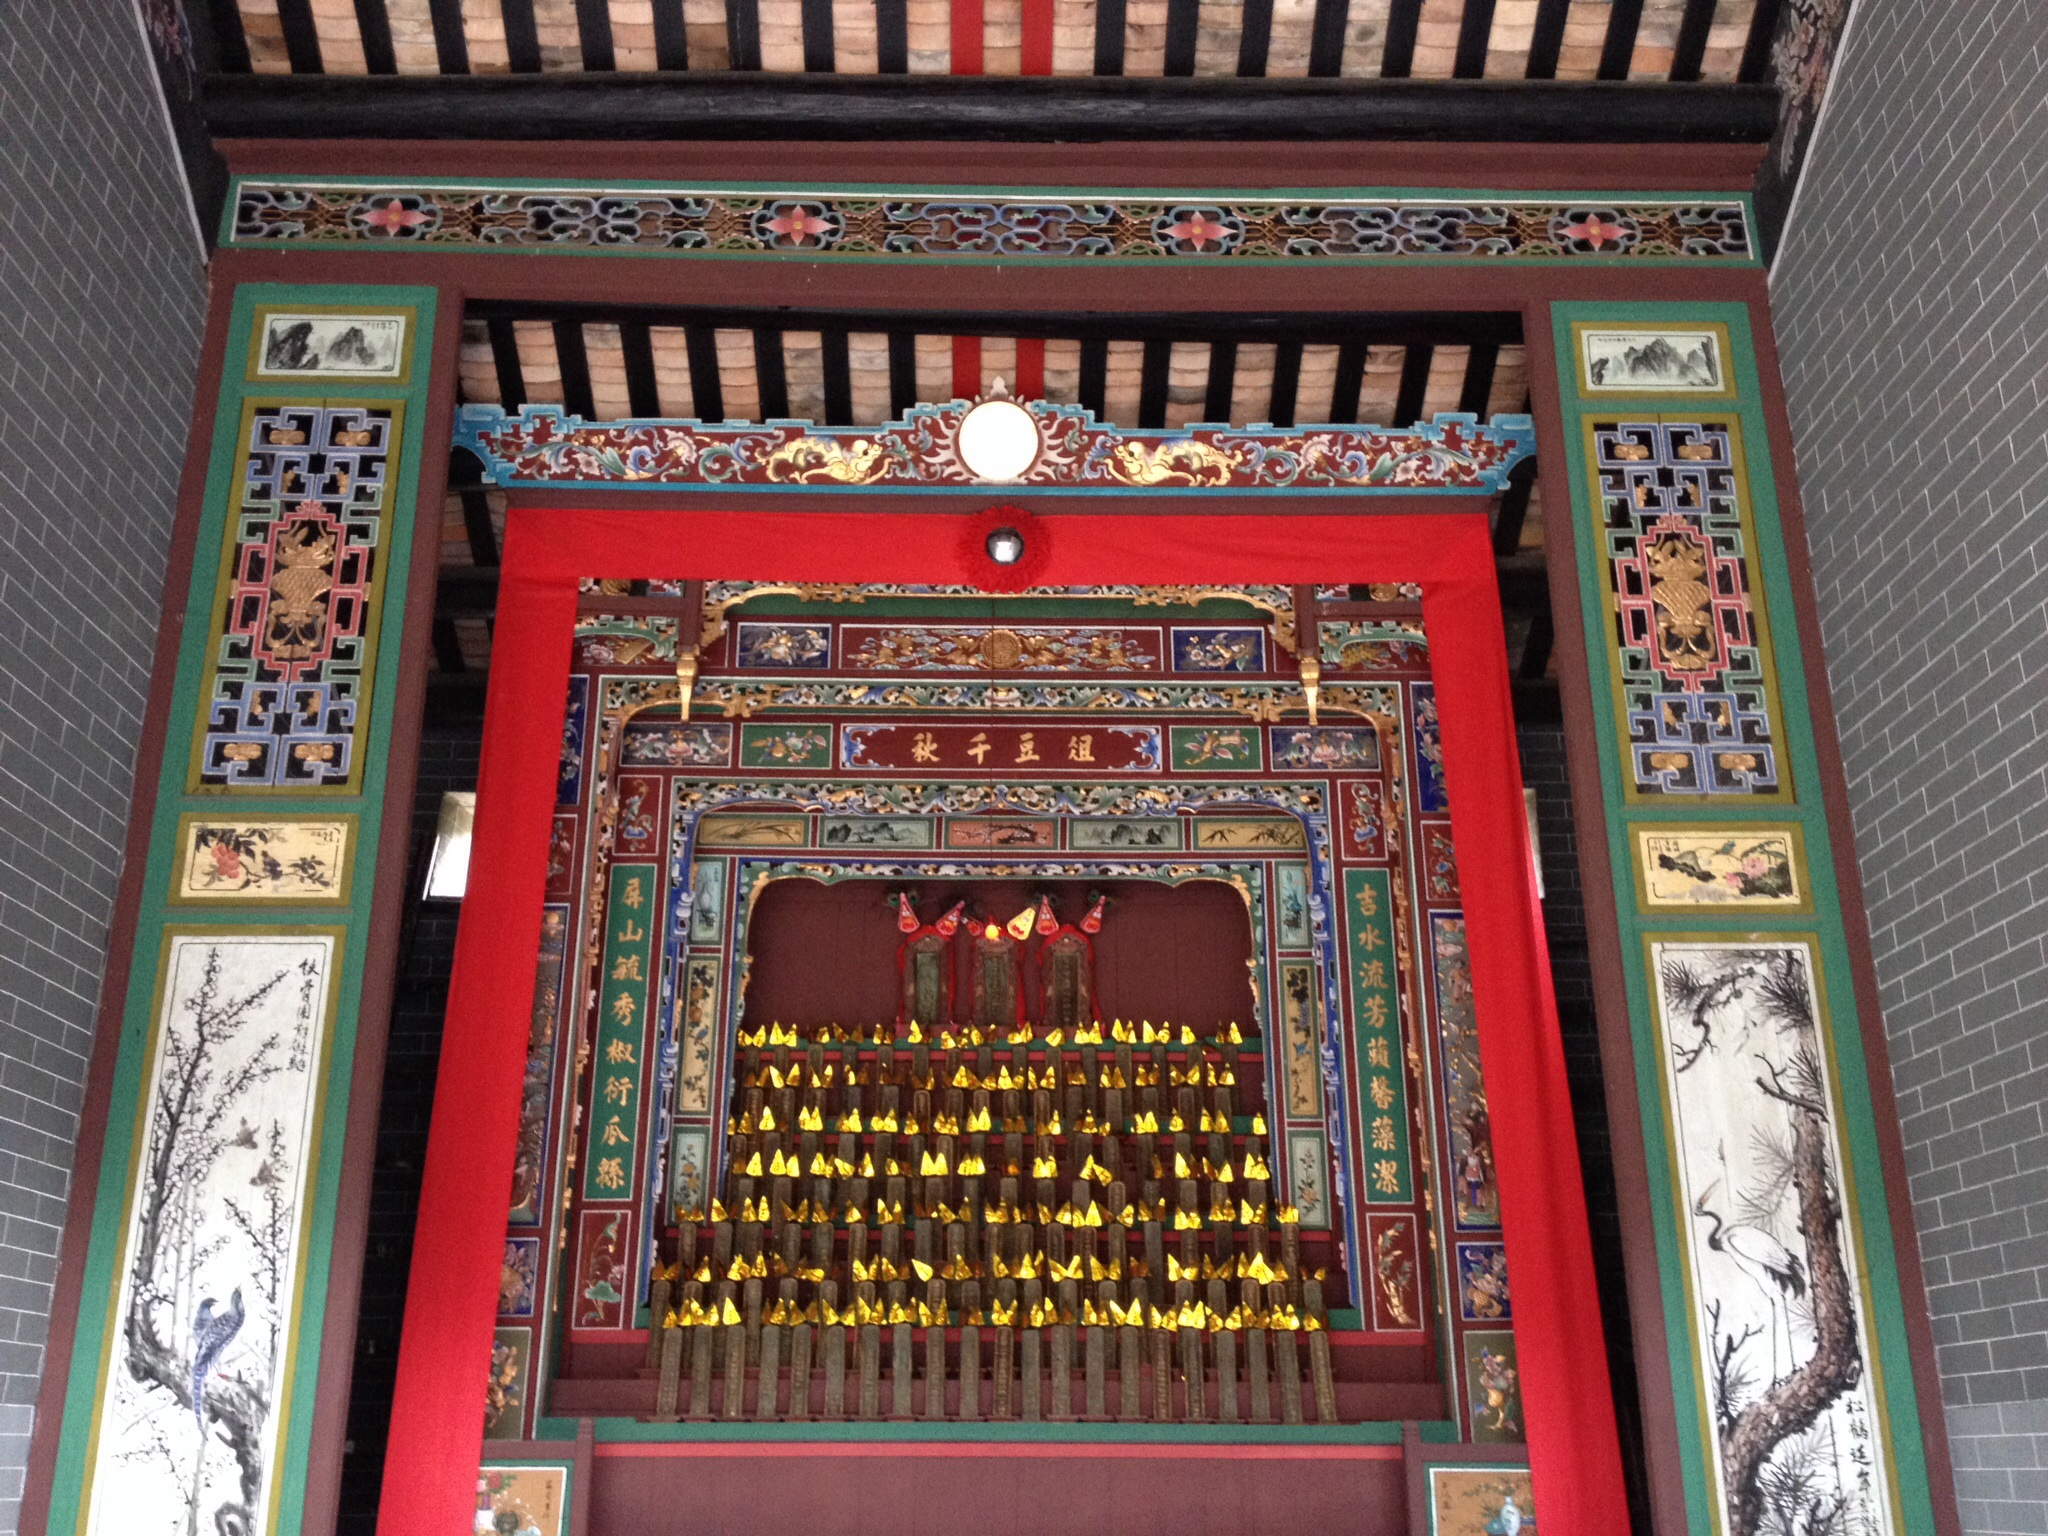 Inside the ancestral hall